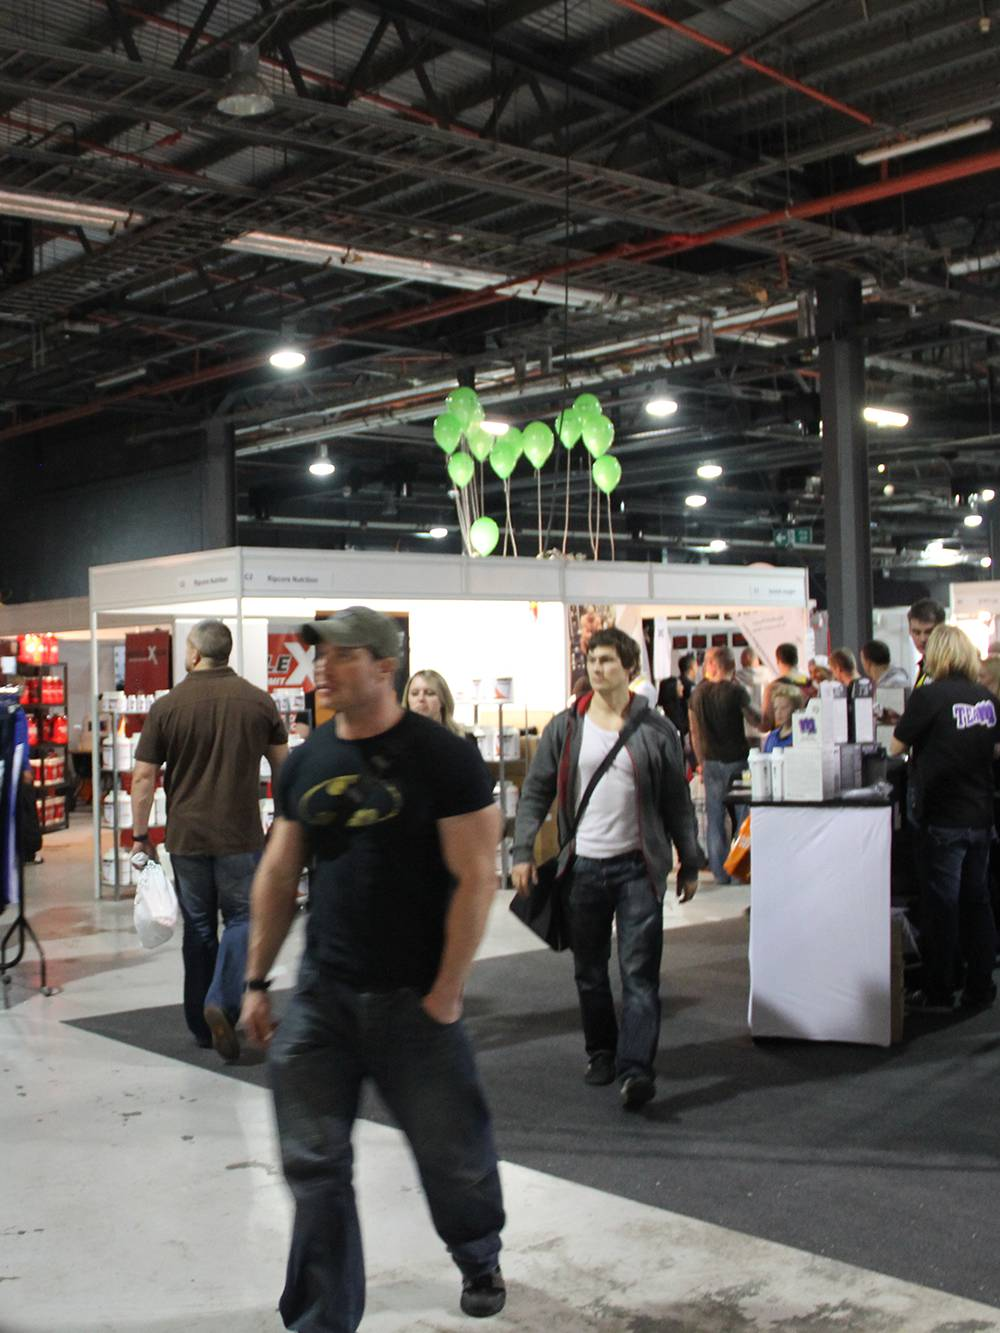 Exhibition stands at Manchester Exhibition Centre